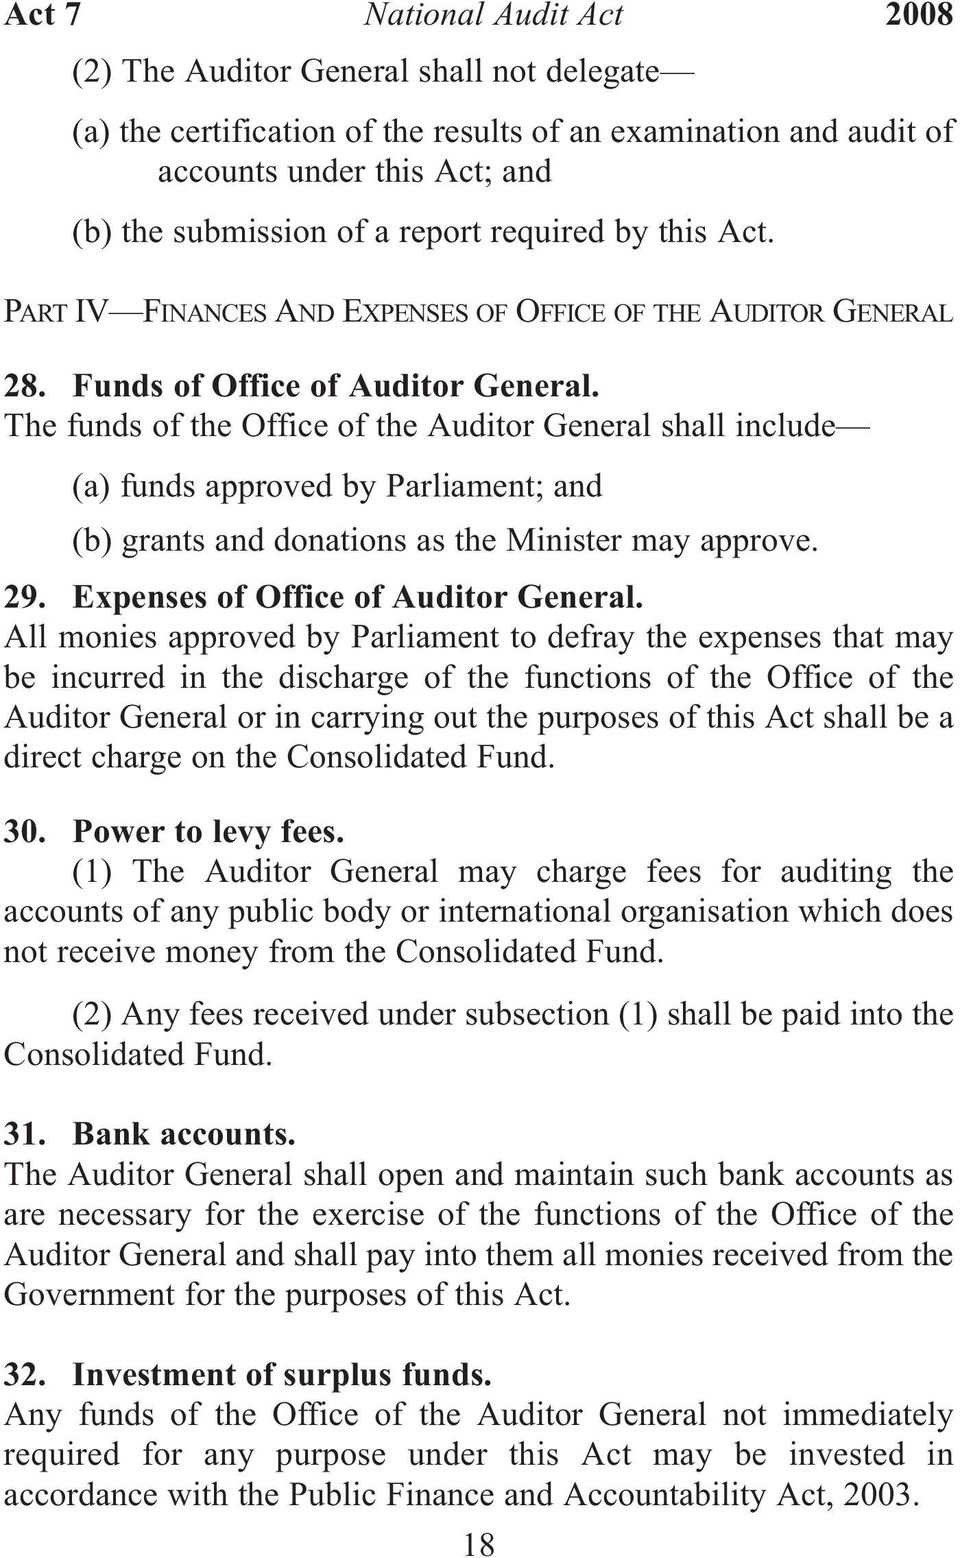 The funds of the Office of the Auditor General shall include (a) funds approved by Parliament; and (b) grants and donations as the Minister may approve. 29. Expenses of Office of Auditor General.